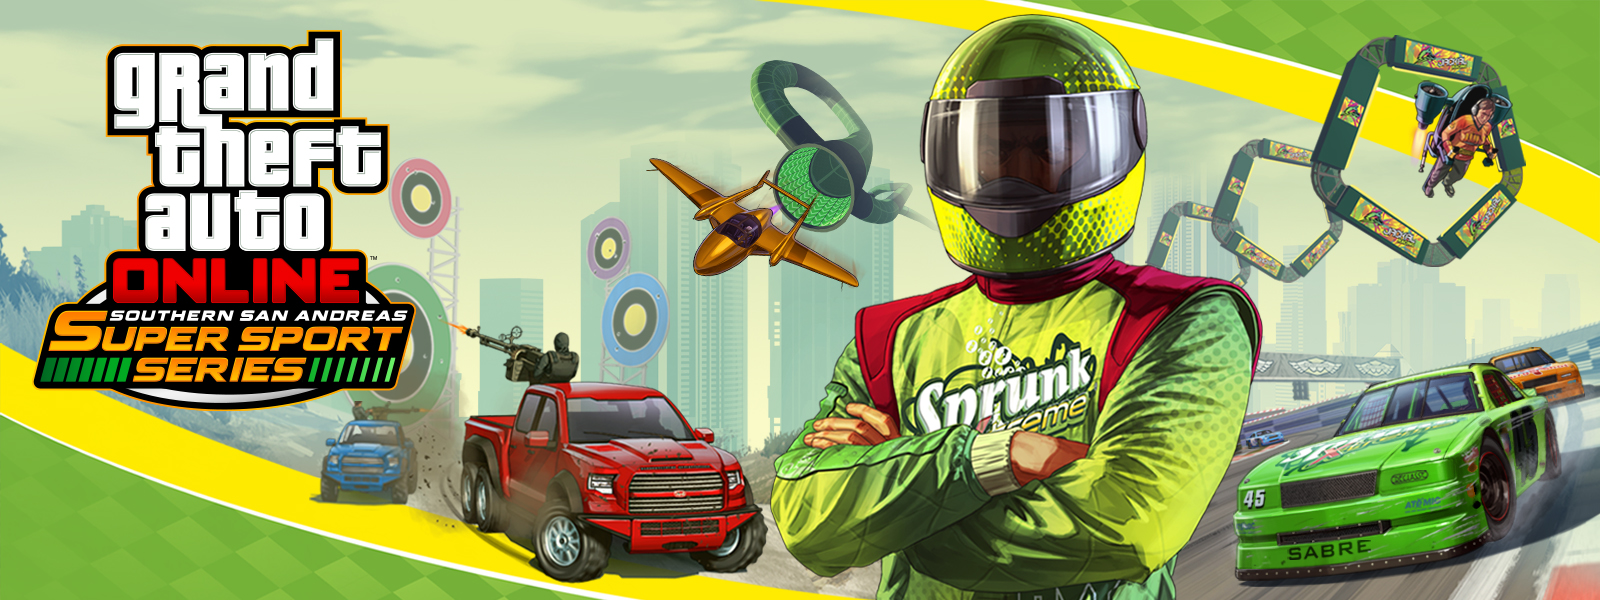 Grand Theft Auto Online Southern San Andreas Super Sports Series, Sprunk Racecar driver stands with his arms crossed in front of many different types of races in the background